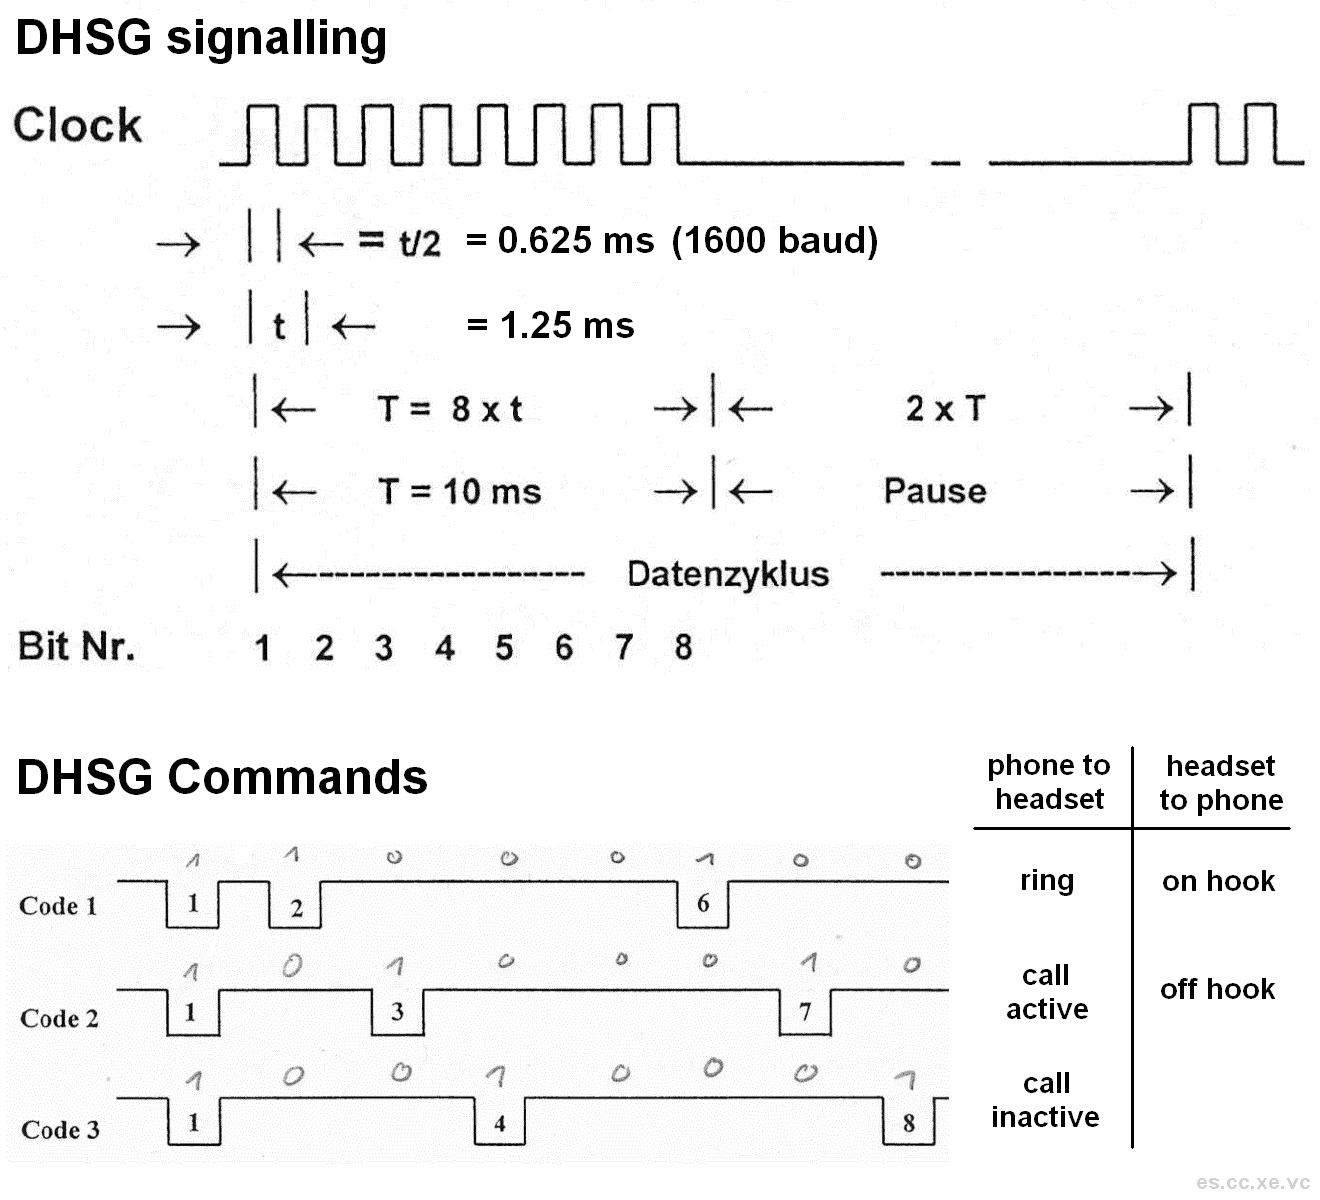 DHSG / EHS wireless headset serial bus protocol signalling / commands specification